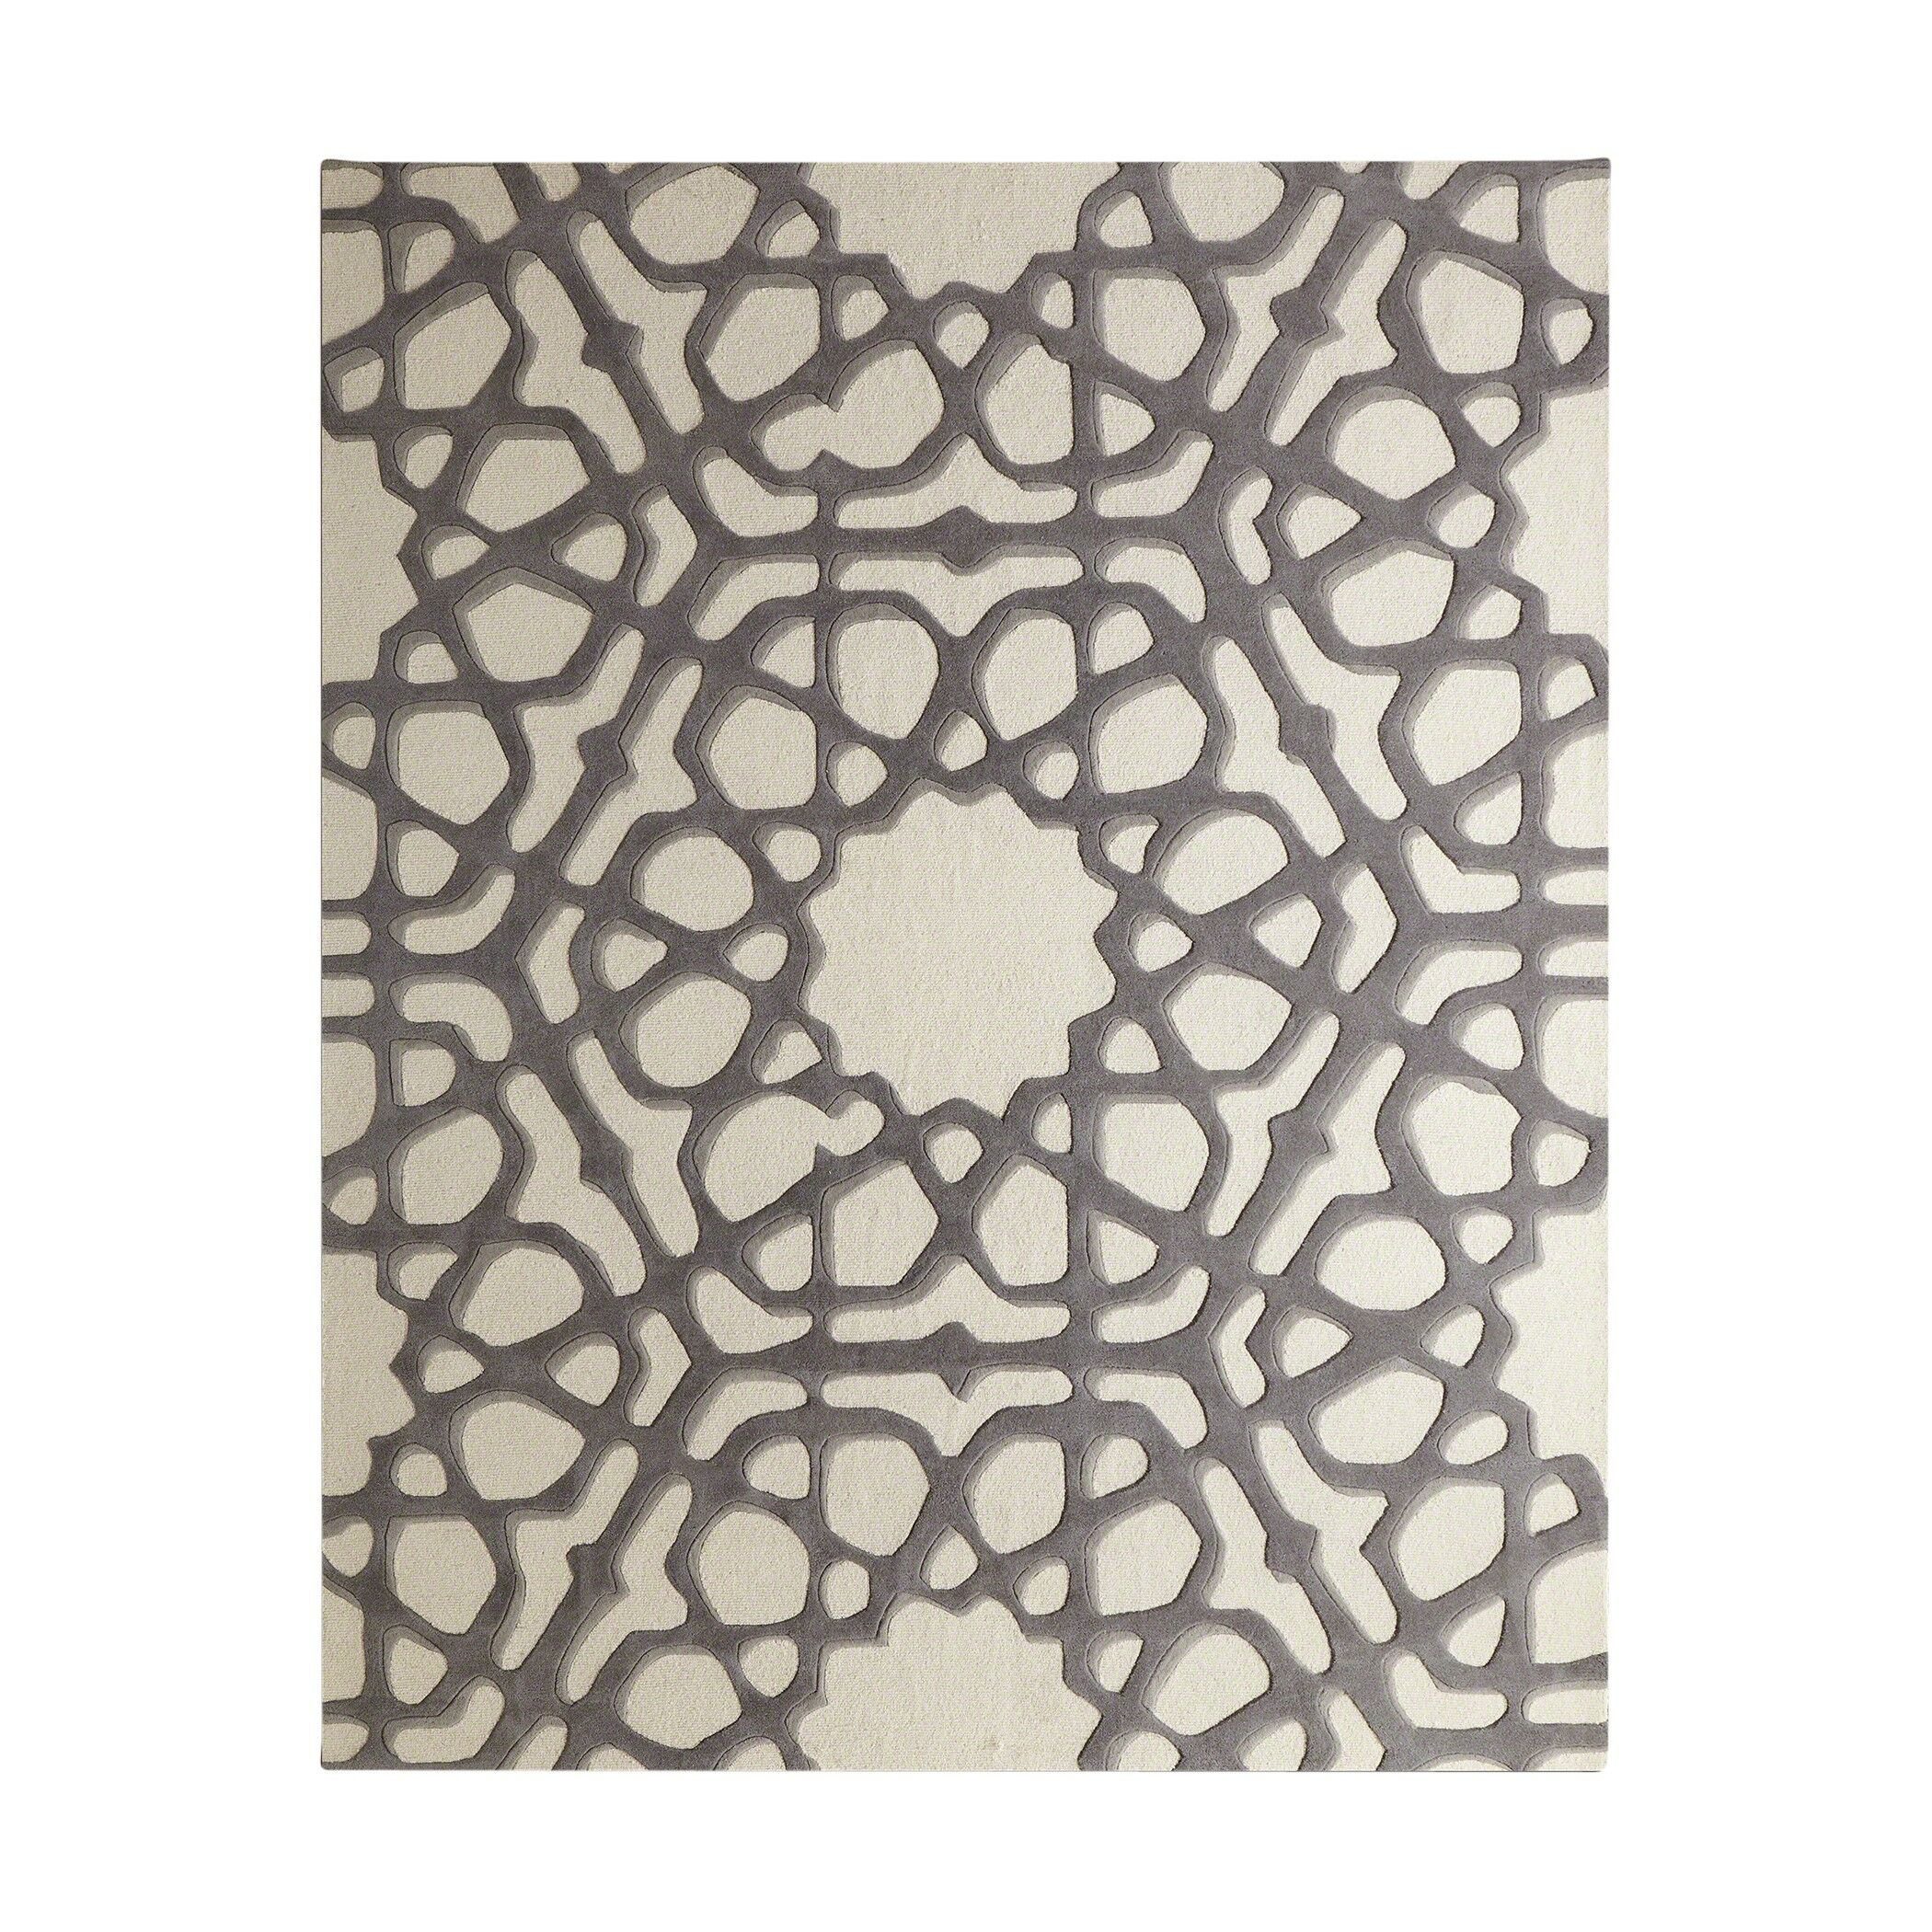 Rose Window Hand-Tufted Wool Gray Area Rug Rug Size: Rectangle 9' x 12'